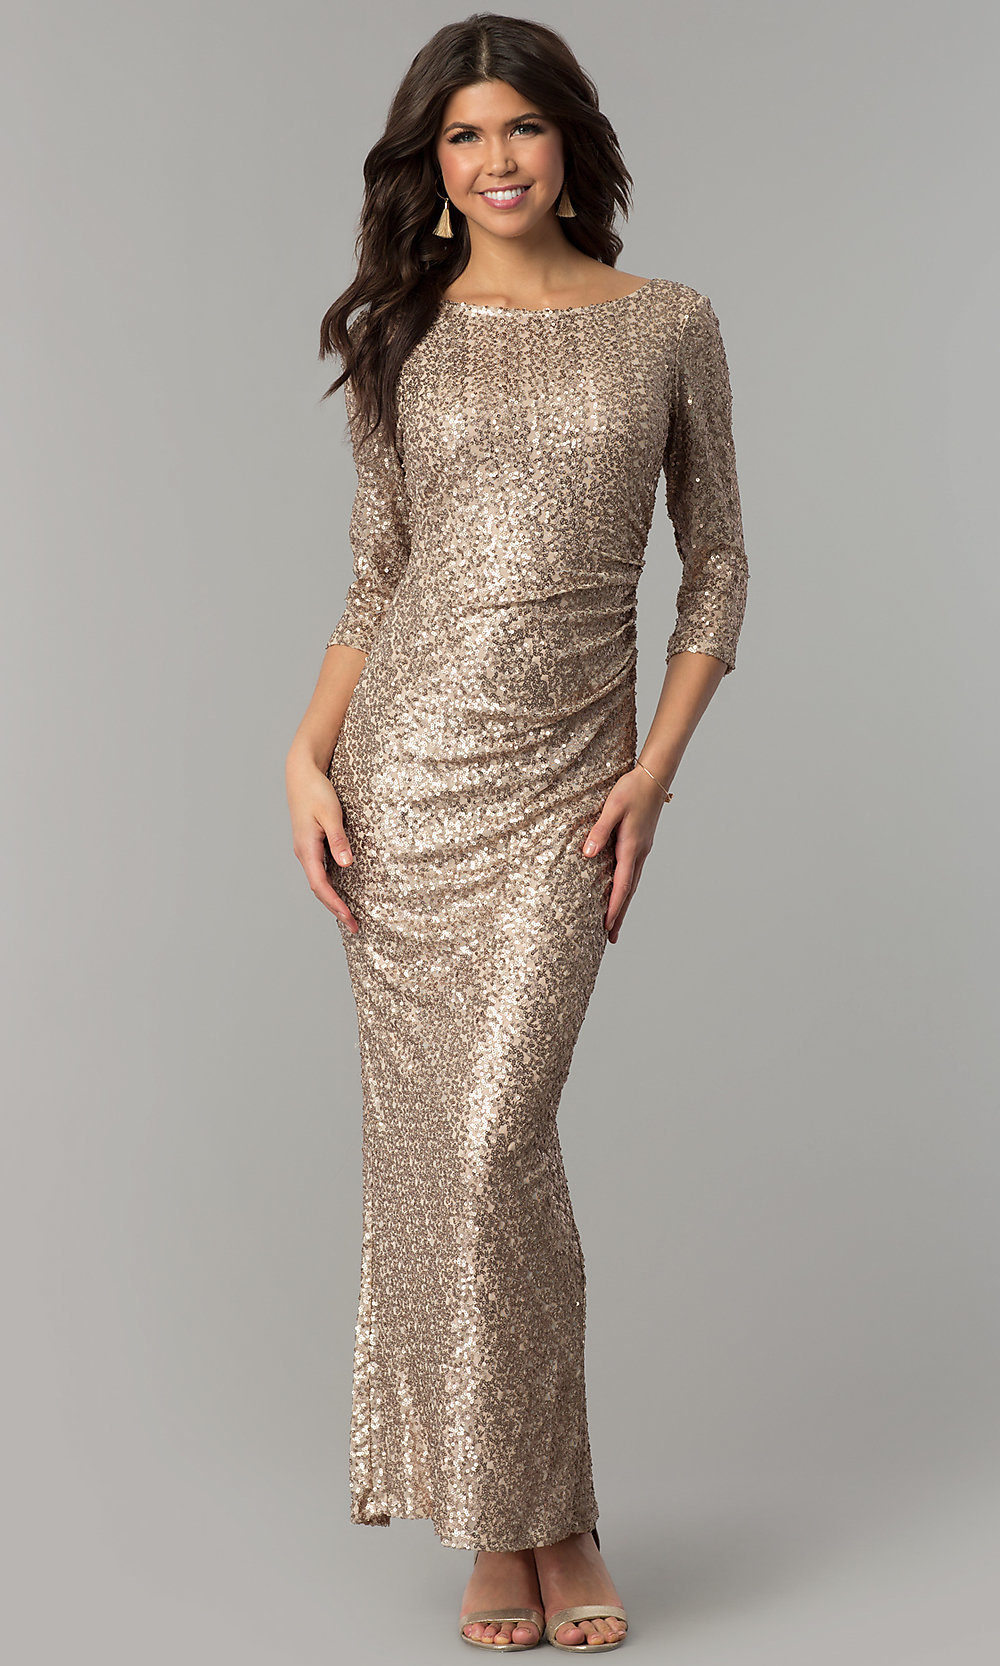 Sleeved Long Gold Sequin Holiday Party Dress -PromGirl